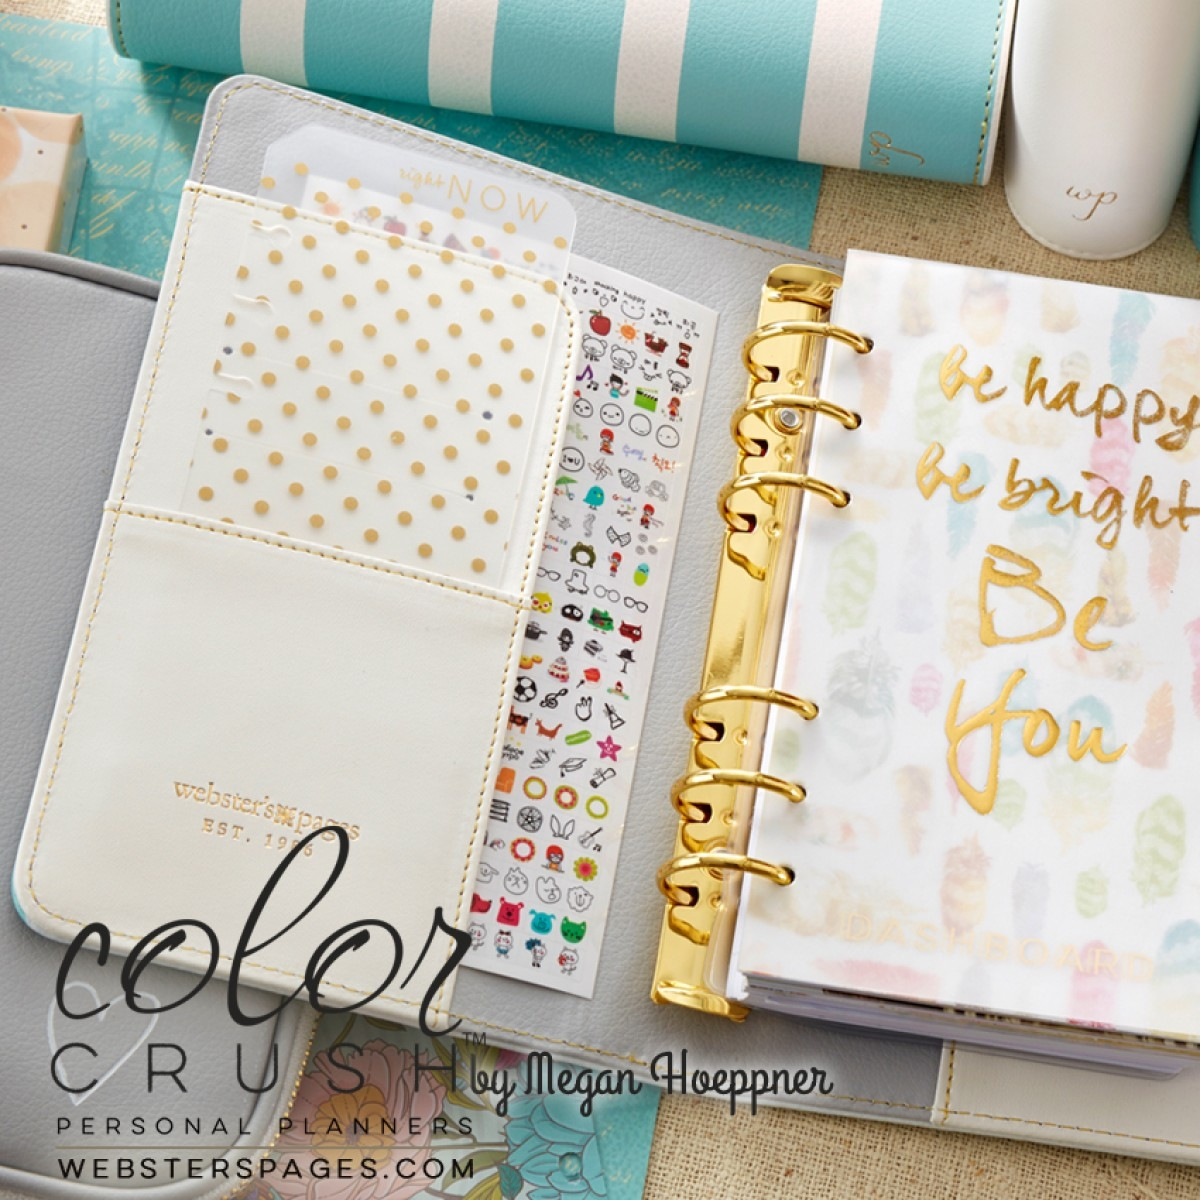 Websters Pages Color Crush - Personal Planner Kit Stripe Personal Planner Kits